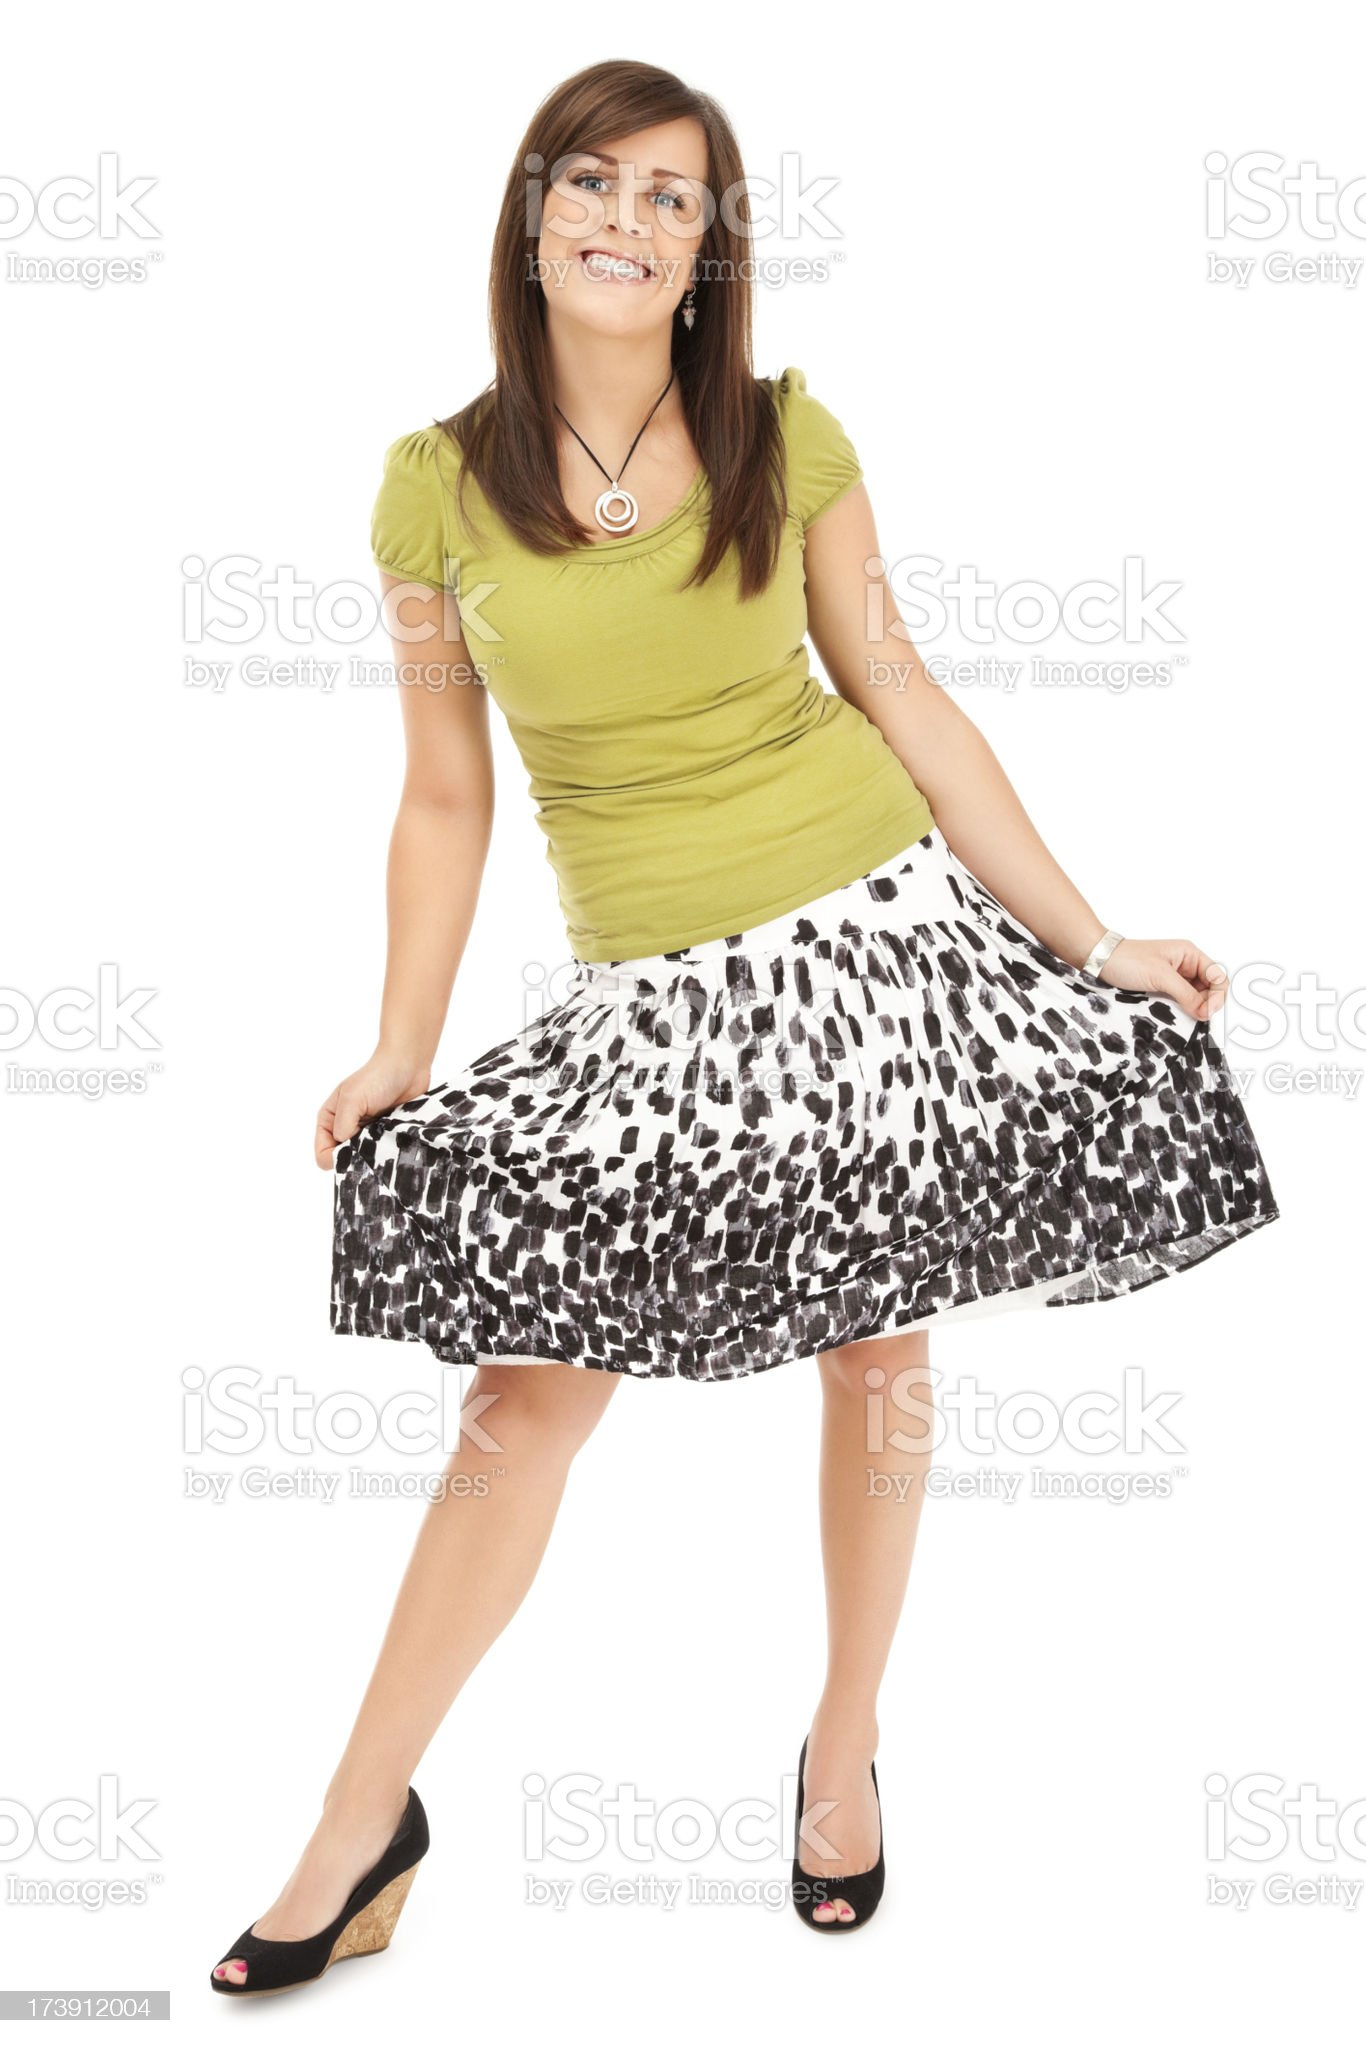 Attractive Young Casual Woman royalty-free stock photo